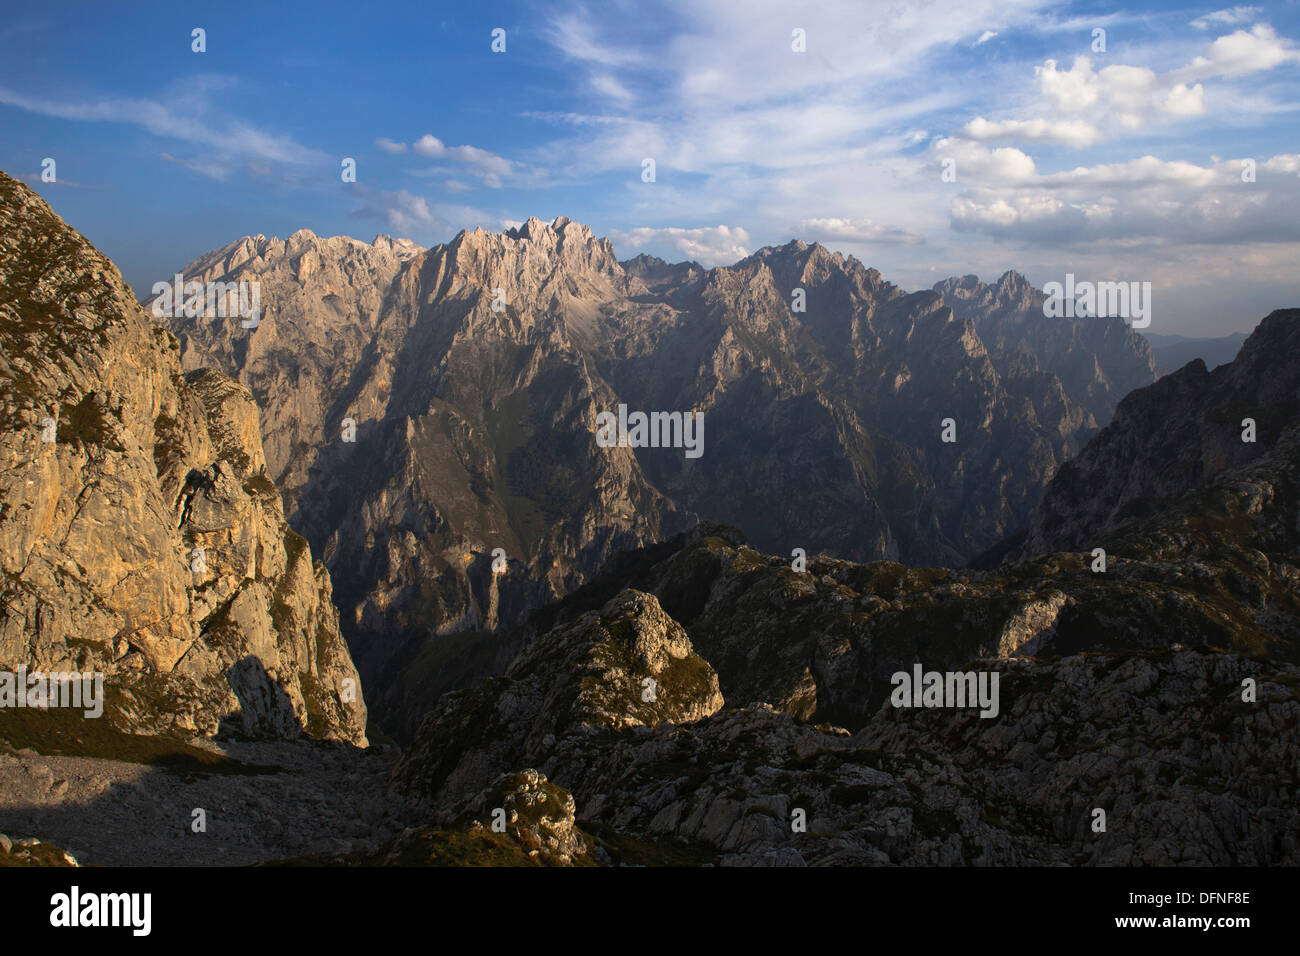 View from the western Picos de Europa, Garganta del Cares, Cares Canyon, peaks of the eastern Picos de Europa, Parque Nacional d - Stock Image